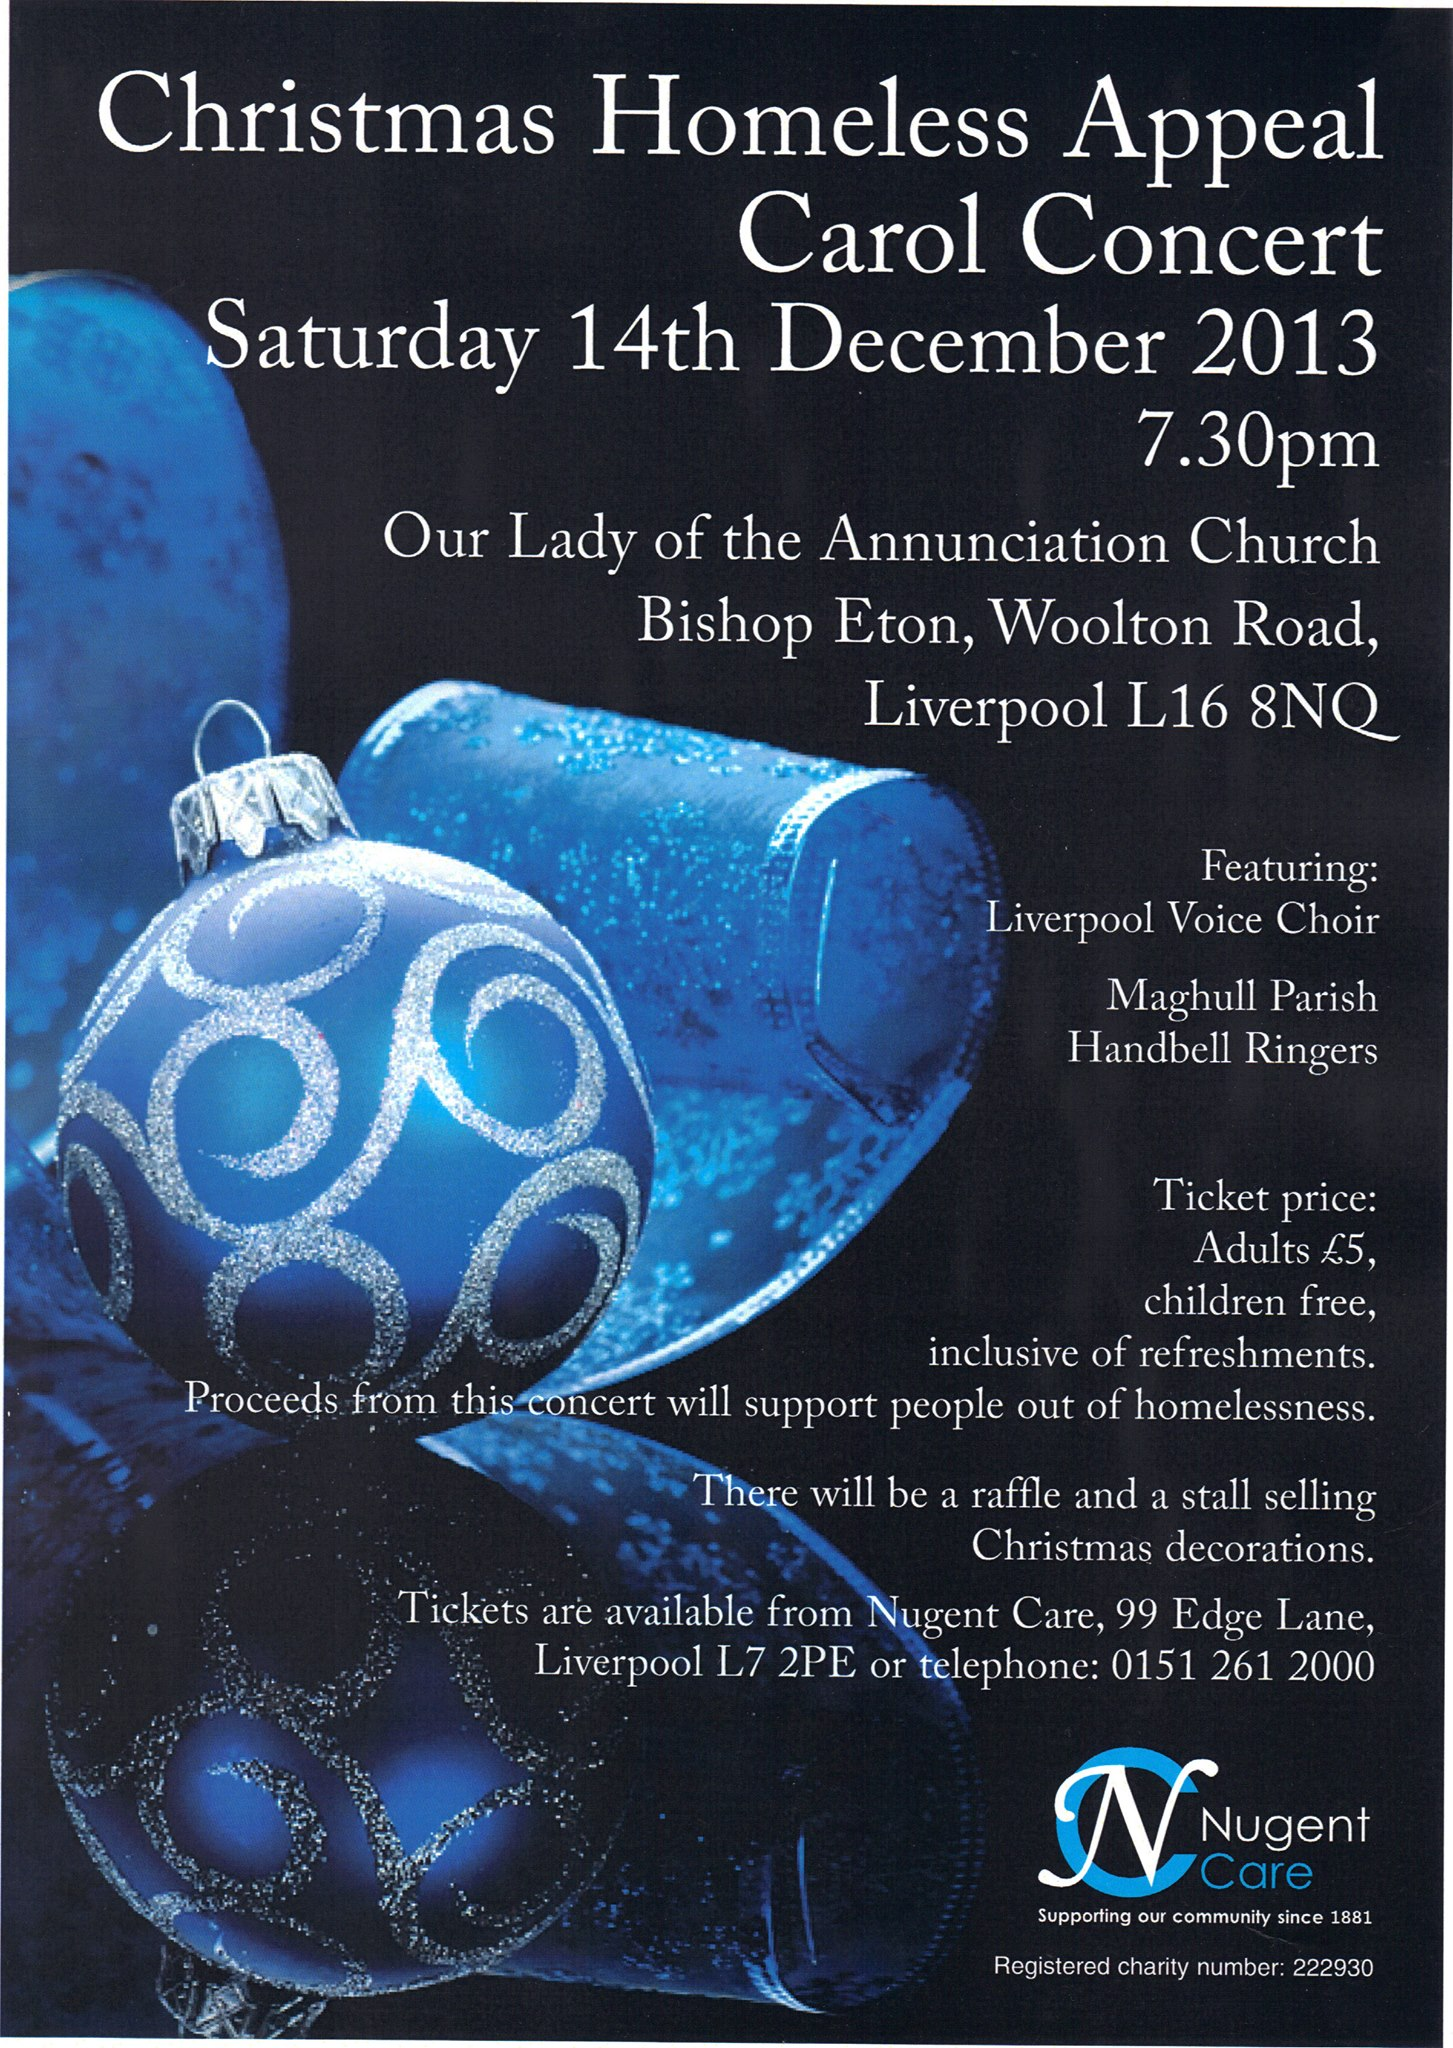 Christmas Homeless Appeal Carol Concert poster by Corinne